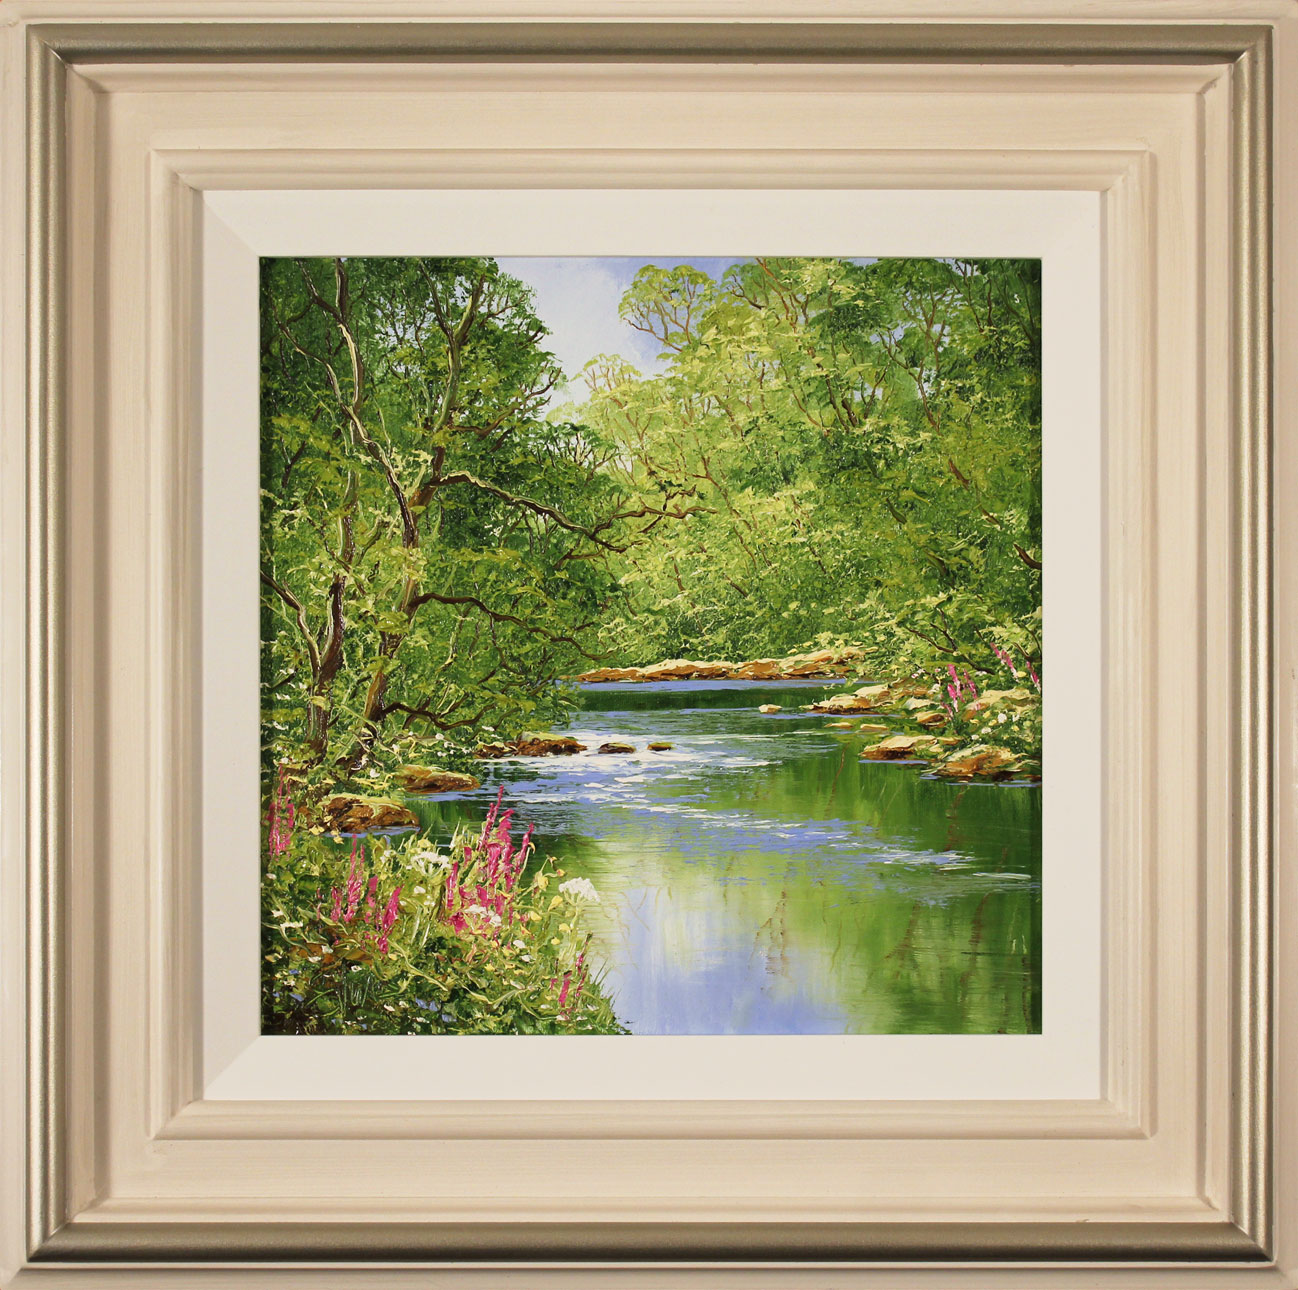 Terry Evans, Original oil painting on canvas, Woodland Stream. Click to enlarge